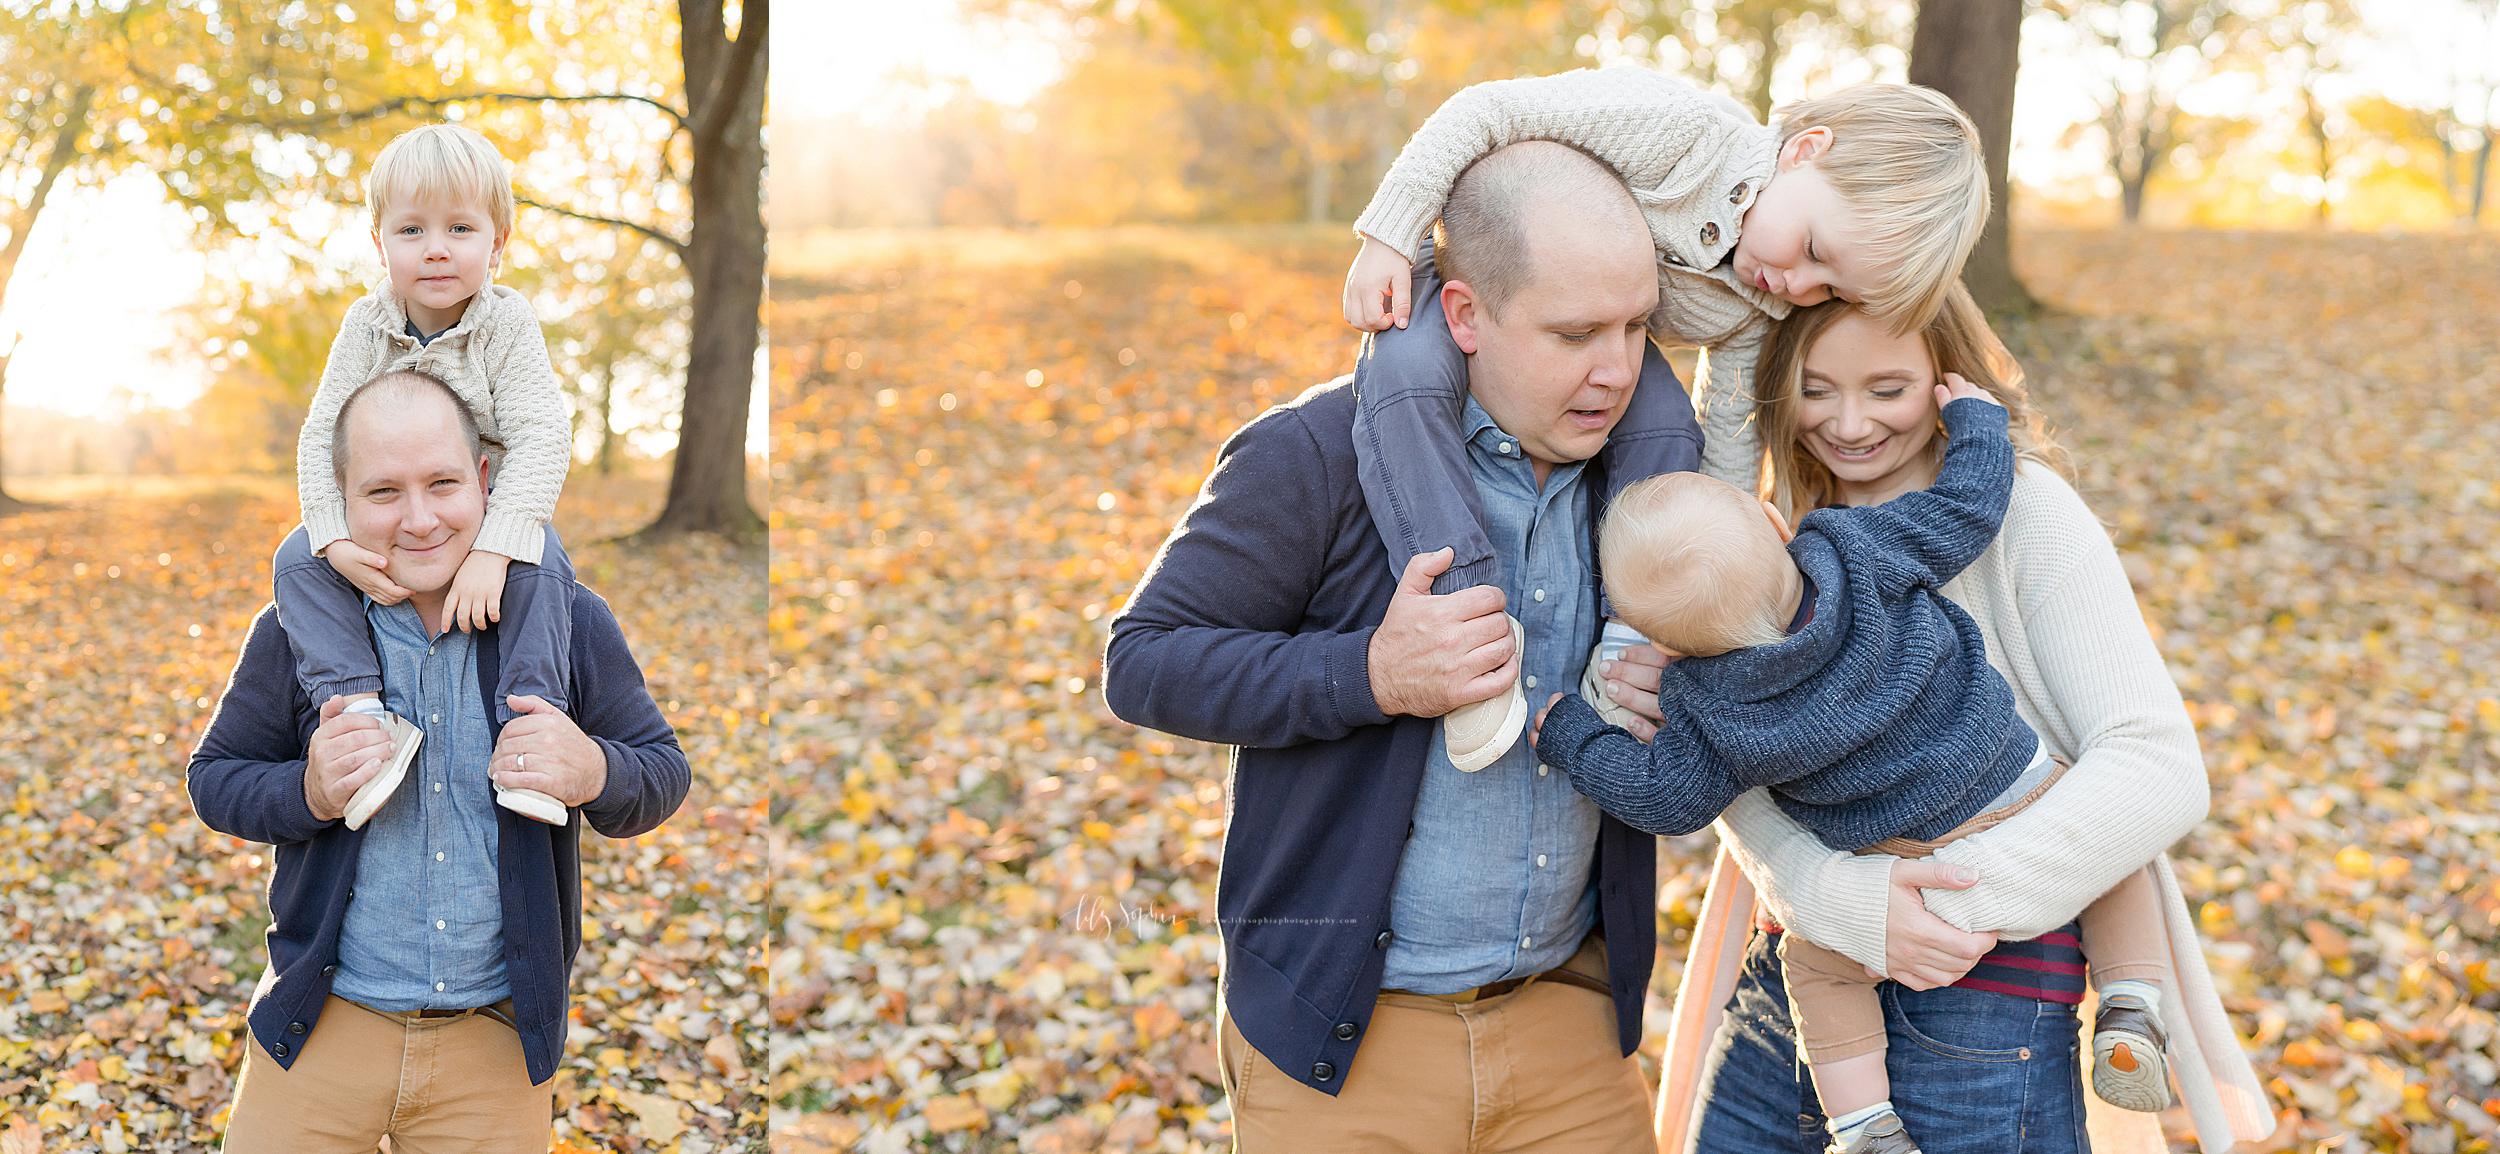 atlanta-midtown-brookhaven-decatur-lily-sophia-photography-photographer-portraits-grant-park-family-sunset-fall-outdoor-session-brothers-toddler-baby_0147.jpg